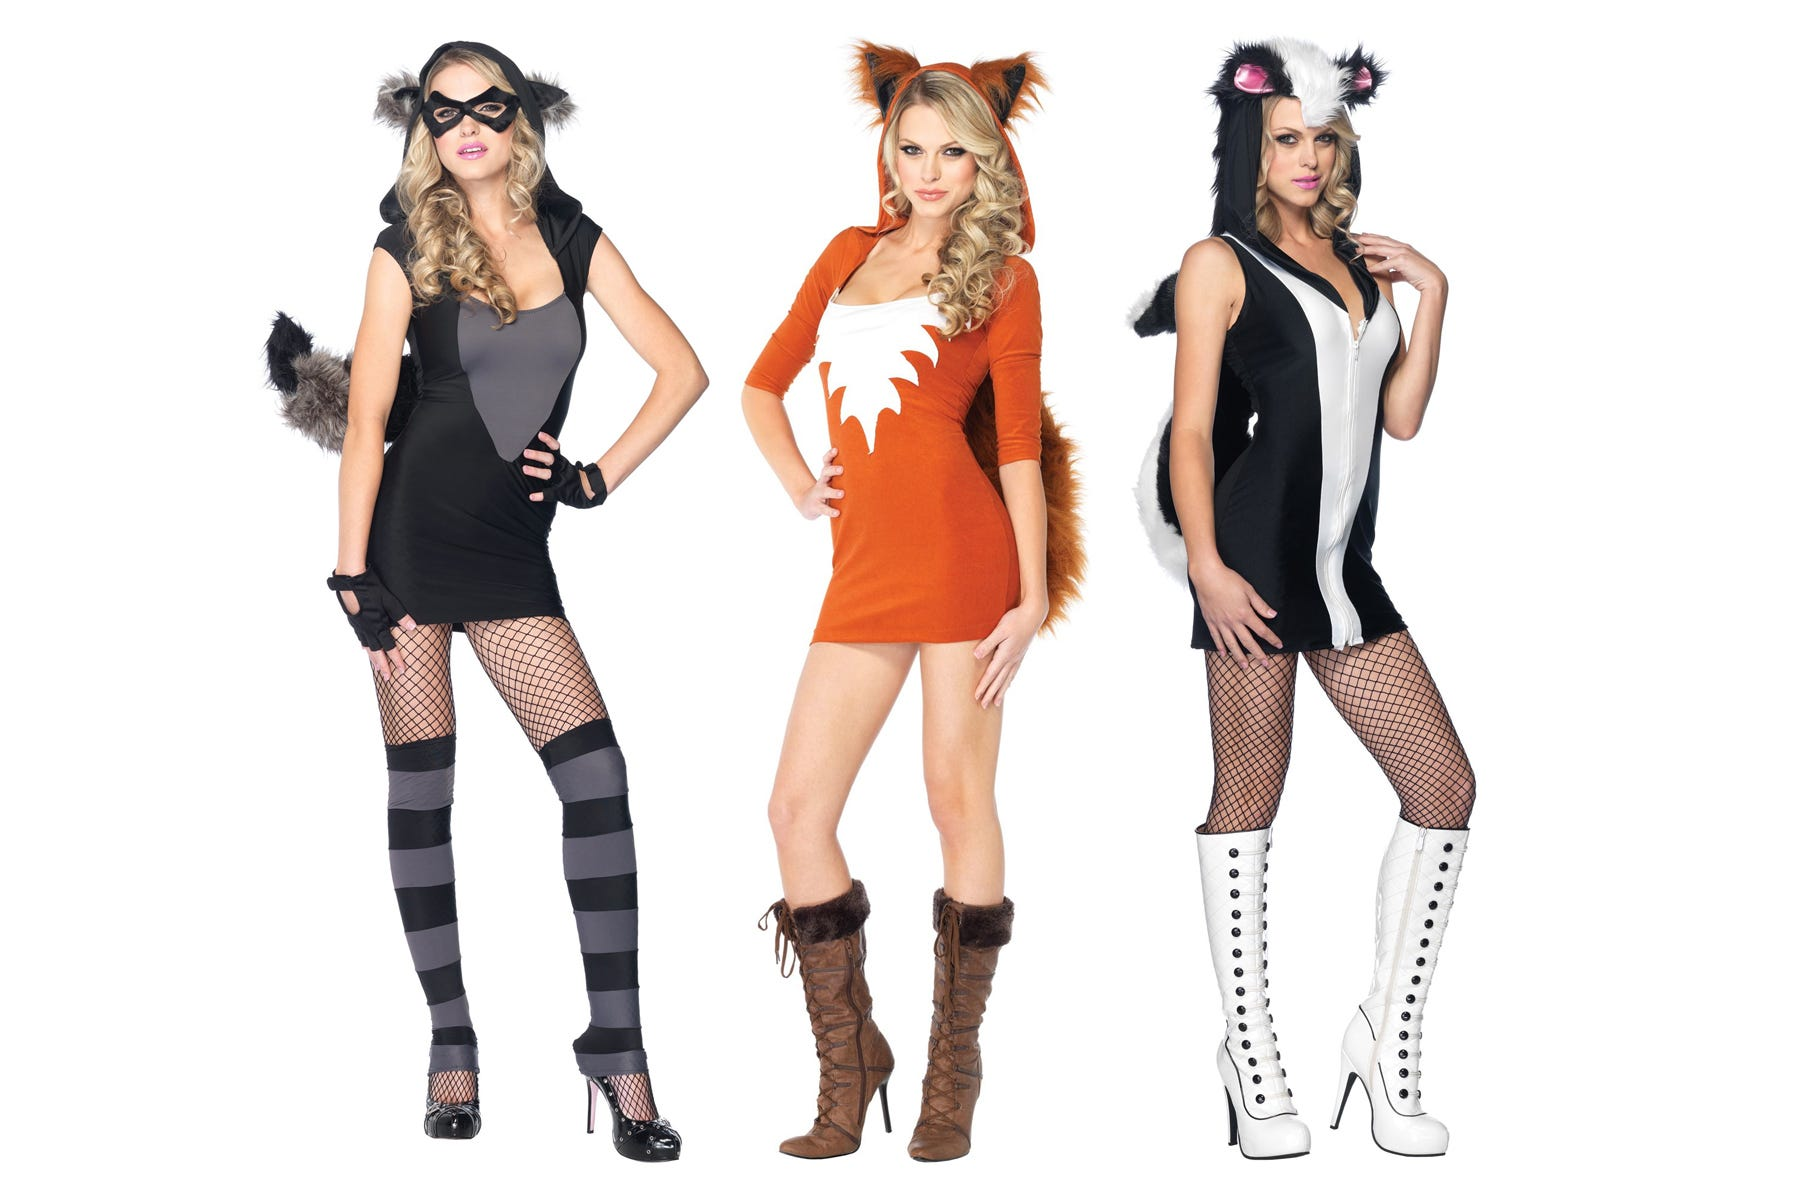 XXX HALLOWEEN-COSTUMES022.JPG  sc 1 st  USA Today & Sexy Halloween costumes: Women just canu0027t win